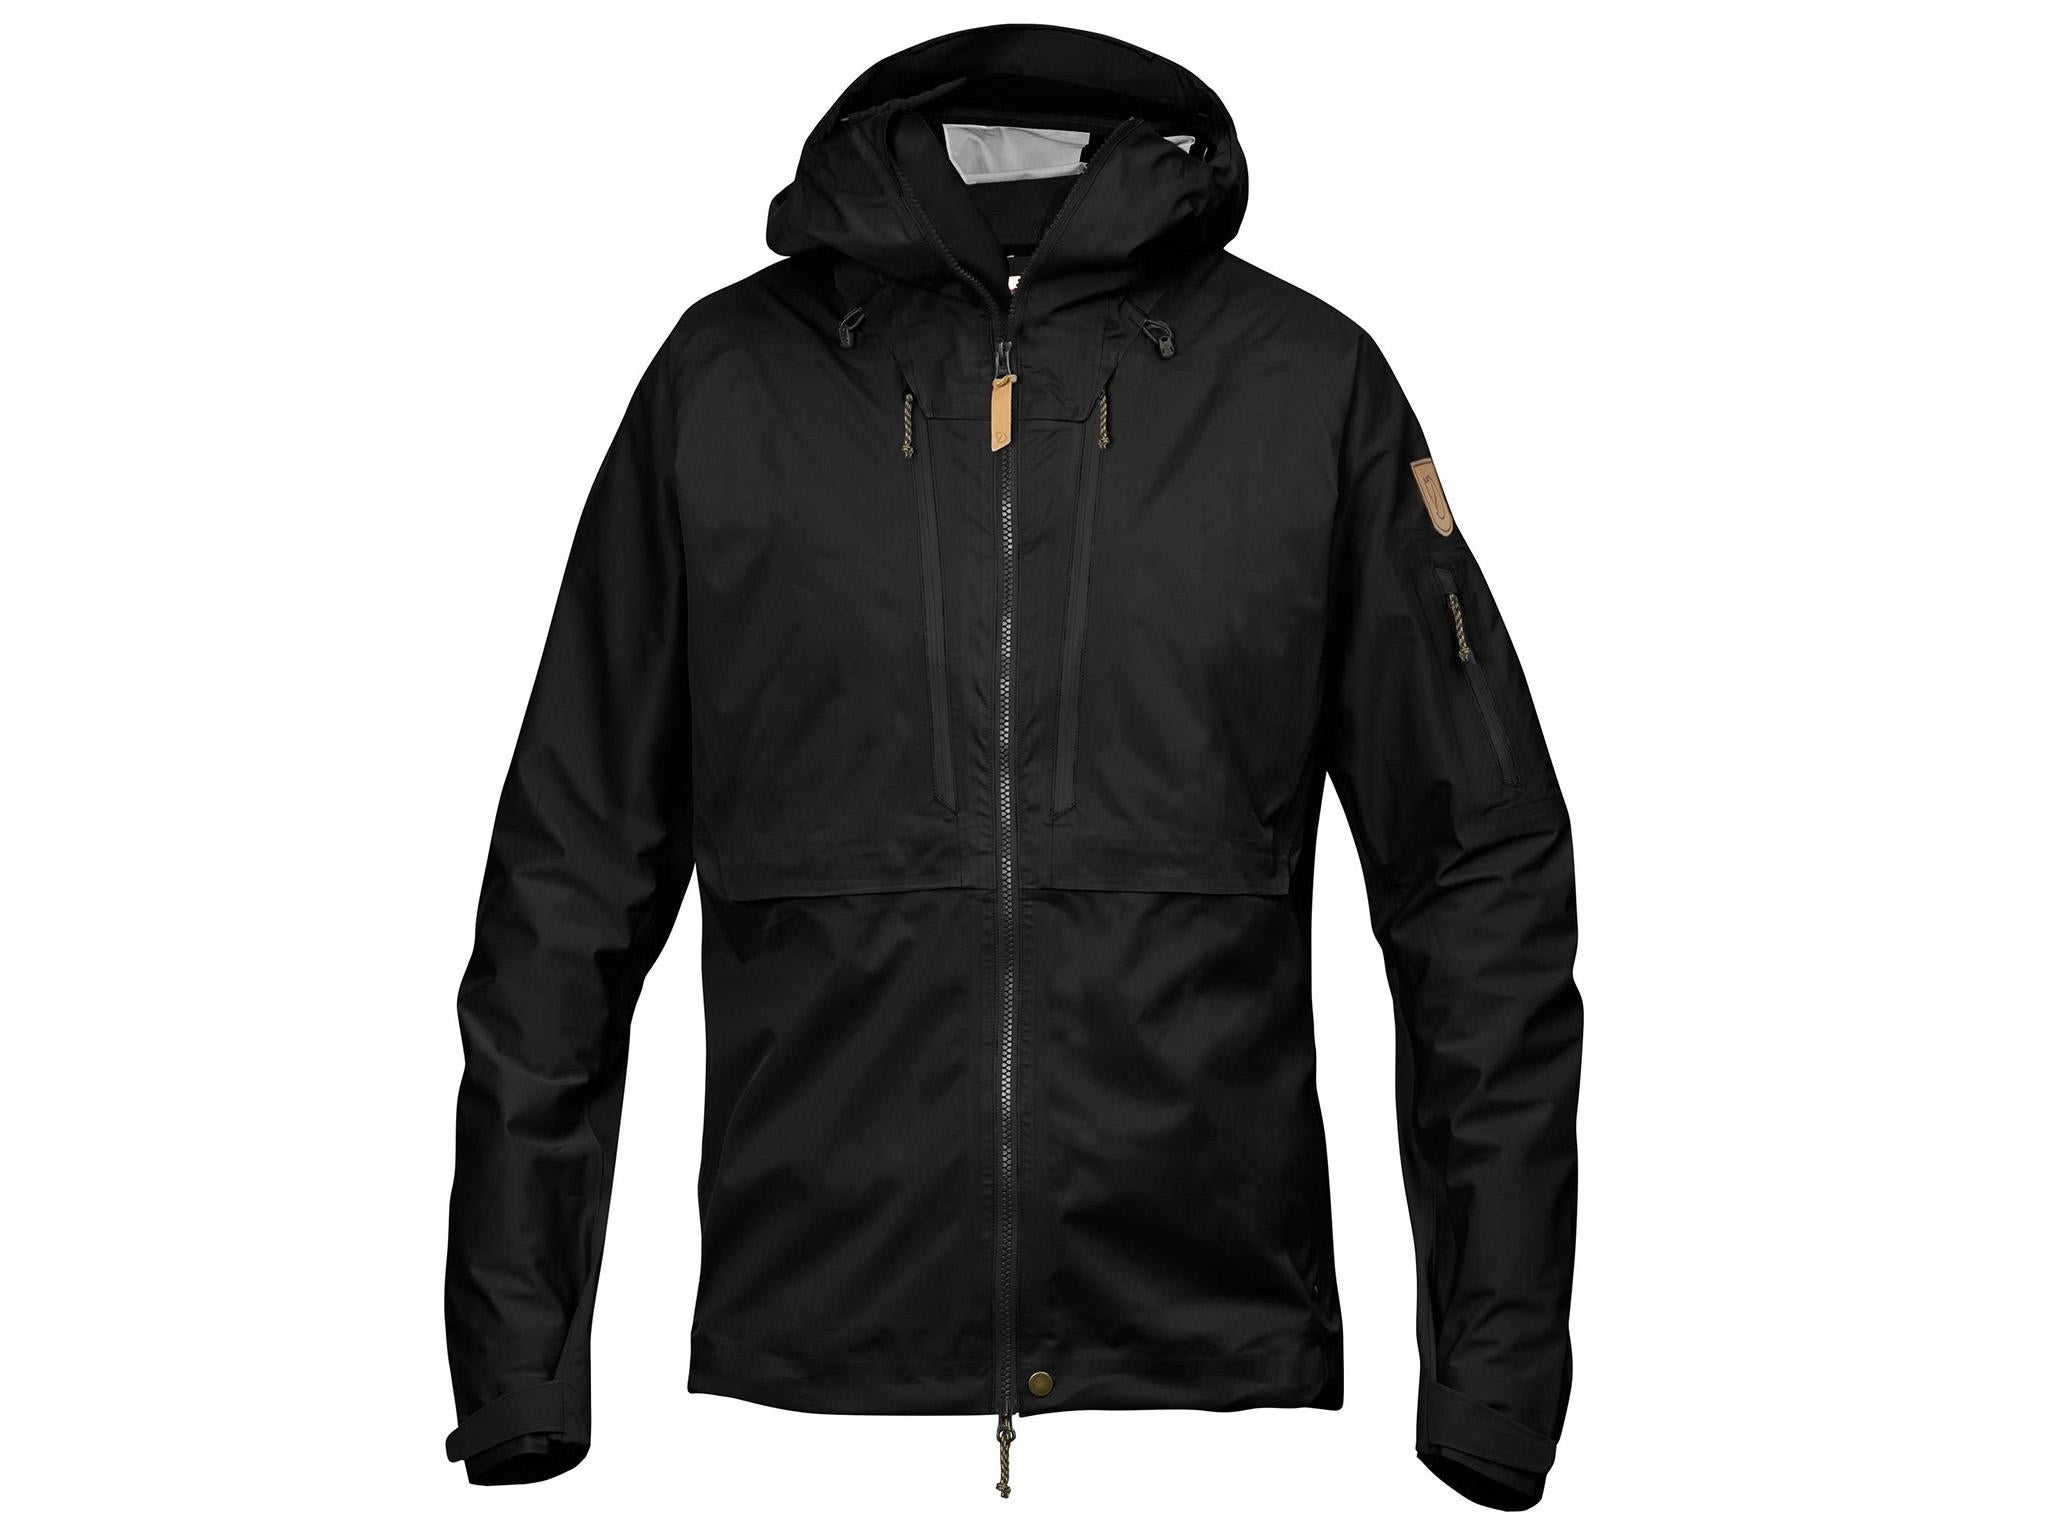 5b74c58fba7 6 best men's walking jackets | The Independent